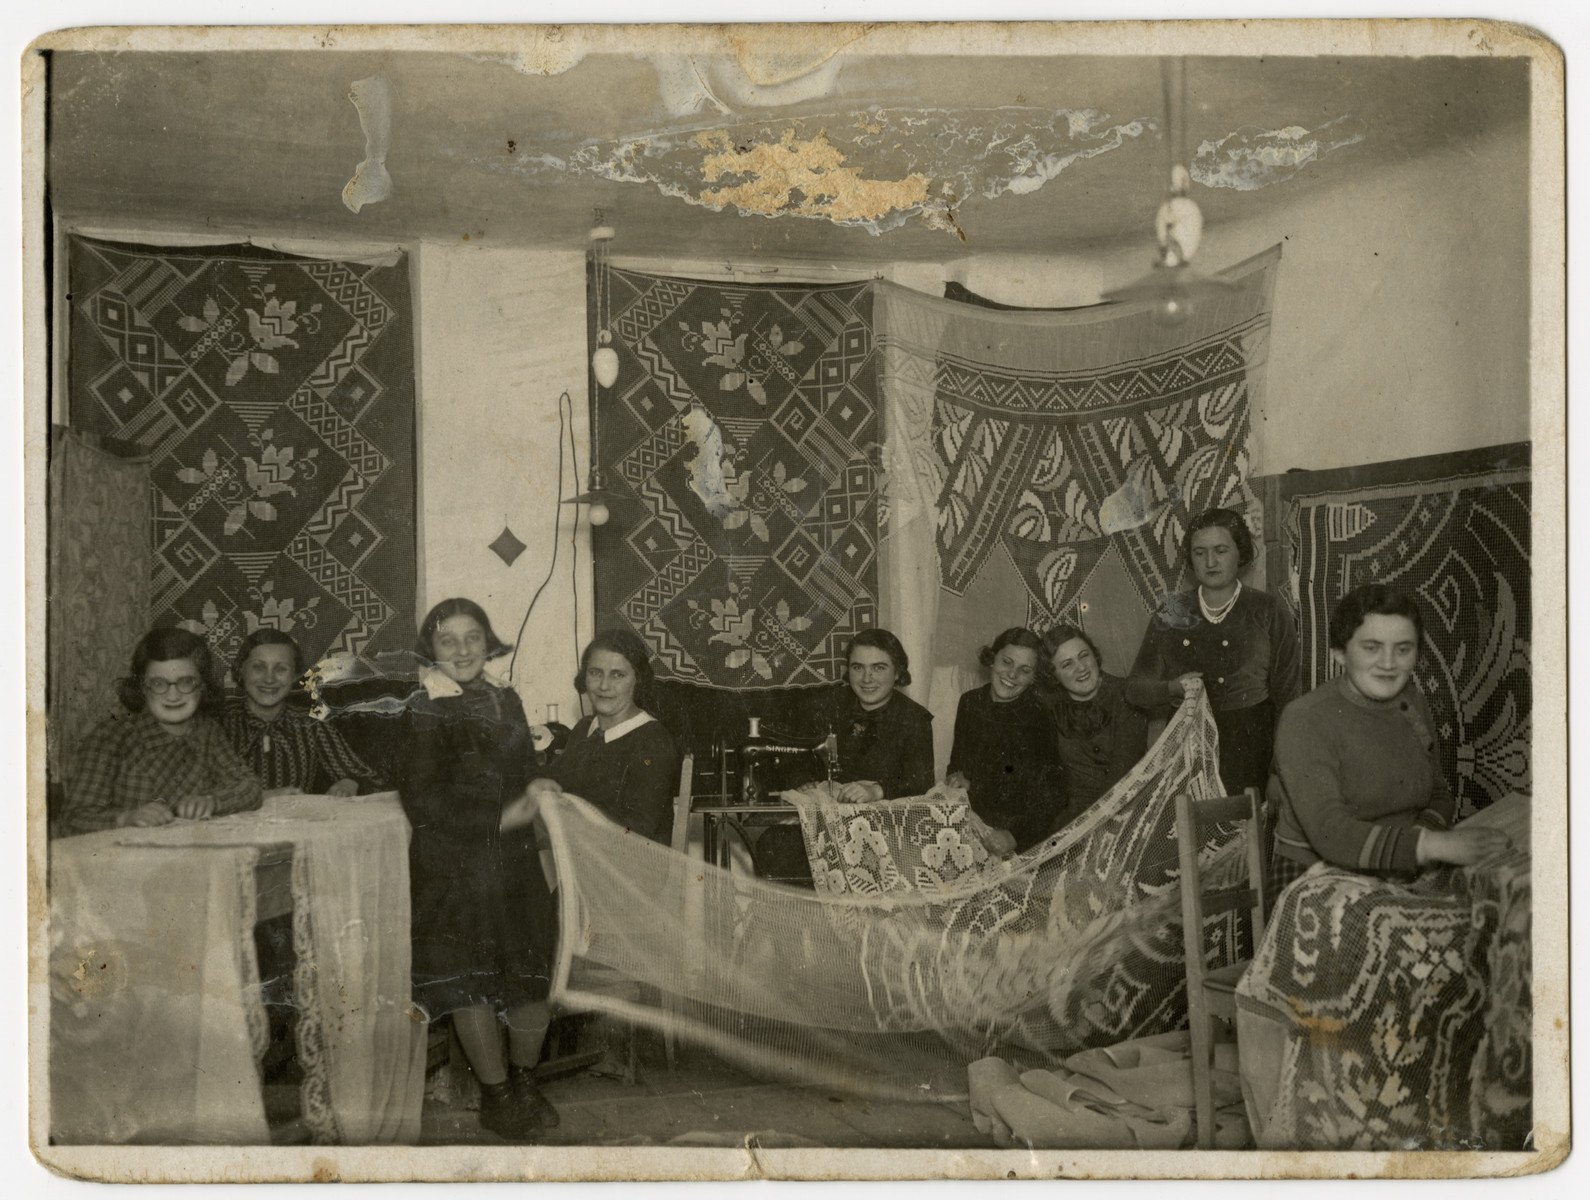 A group of Beit Yaakov women sew lace curtains in Rymanow, Poland.  Pictured at the right is the donor's mother, Sara Ginsburg Keller.